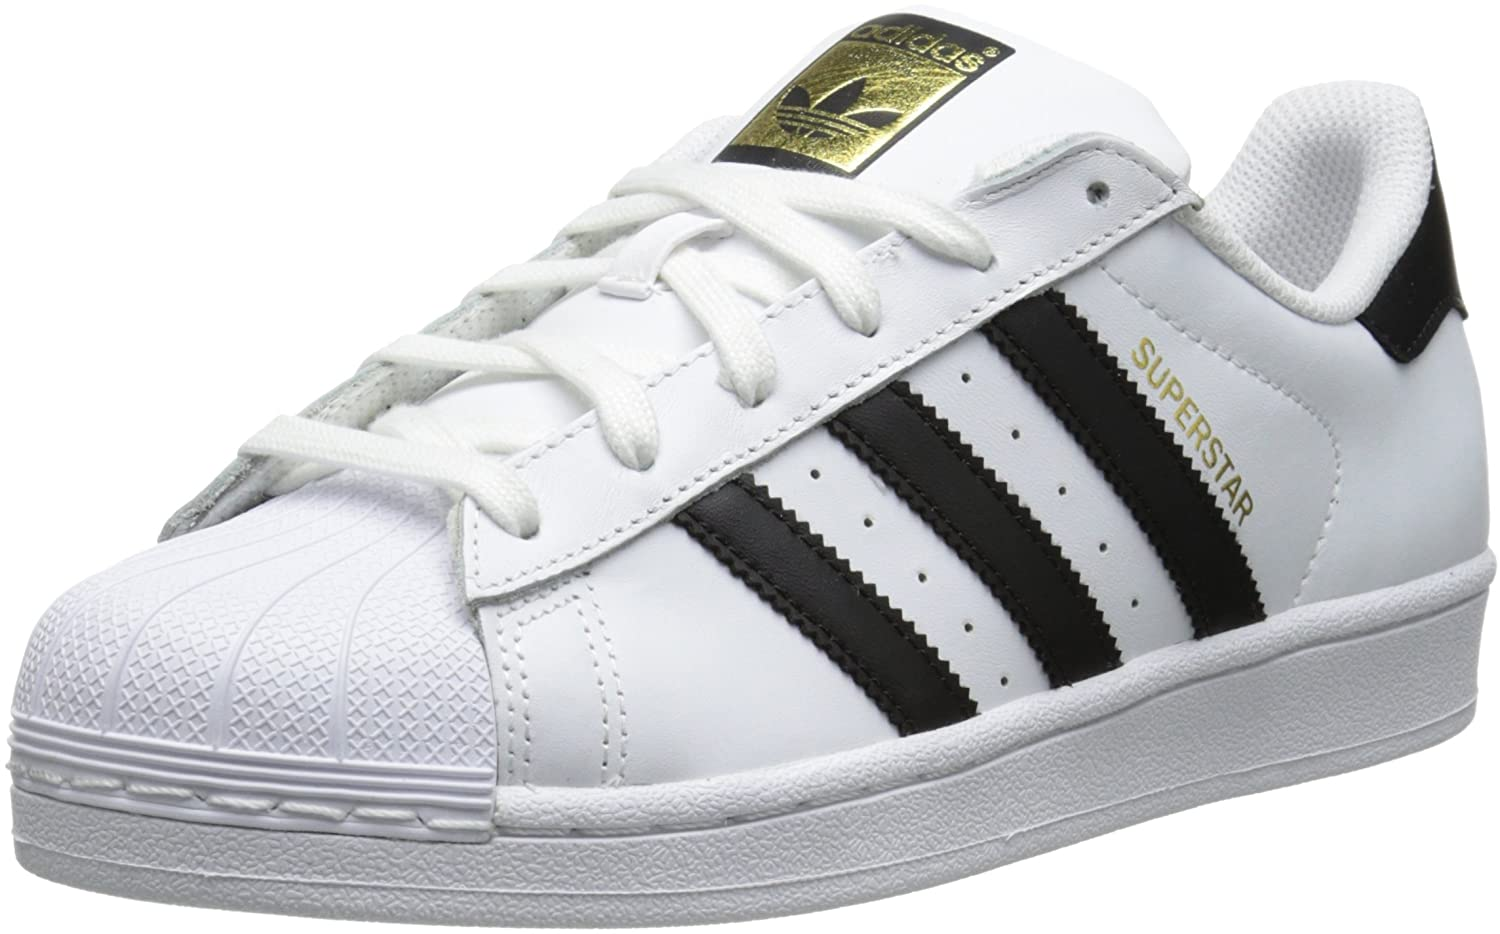 Adidas Superstar Womens 2015